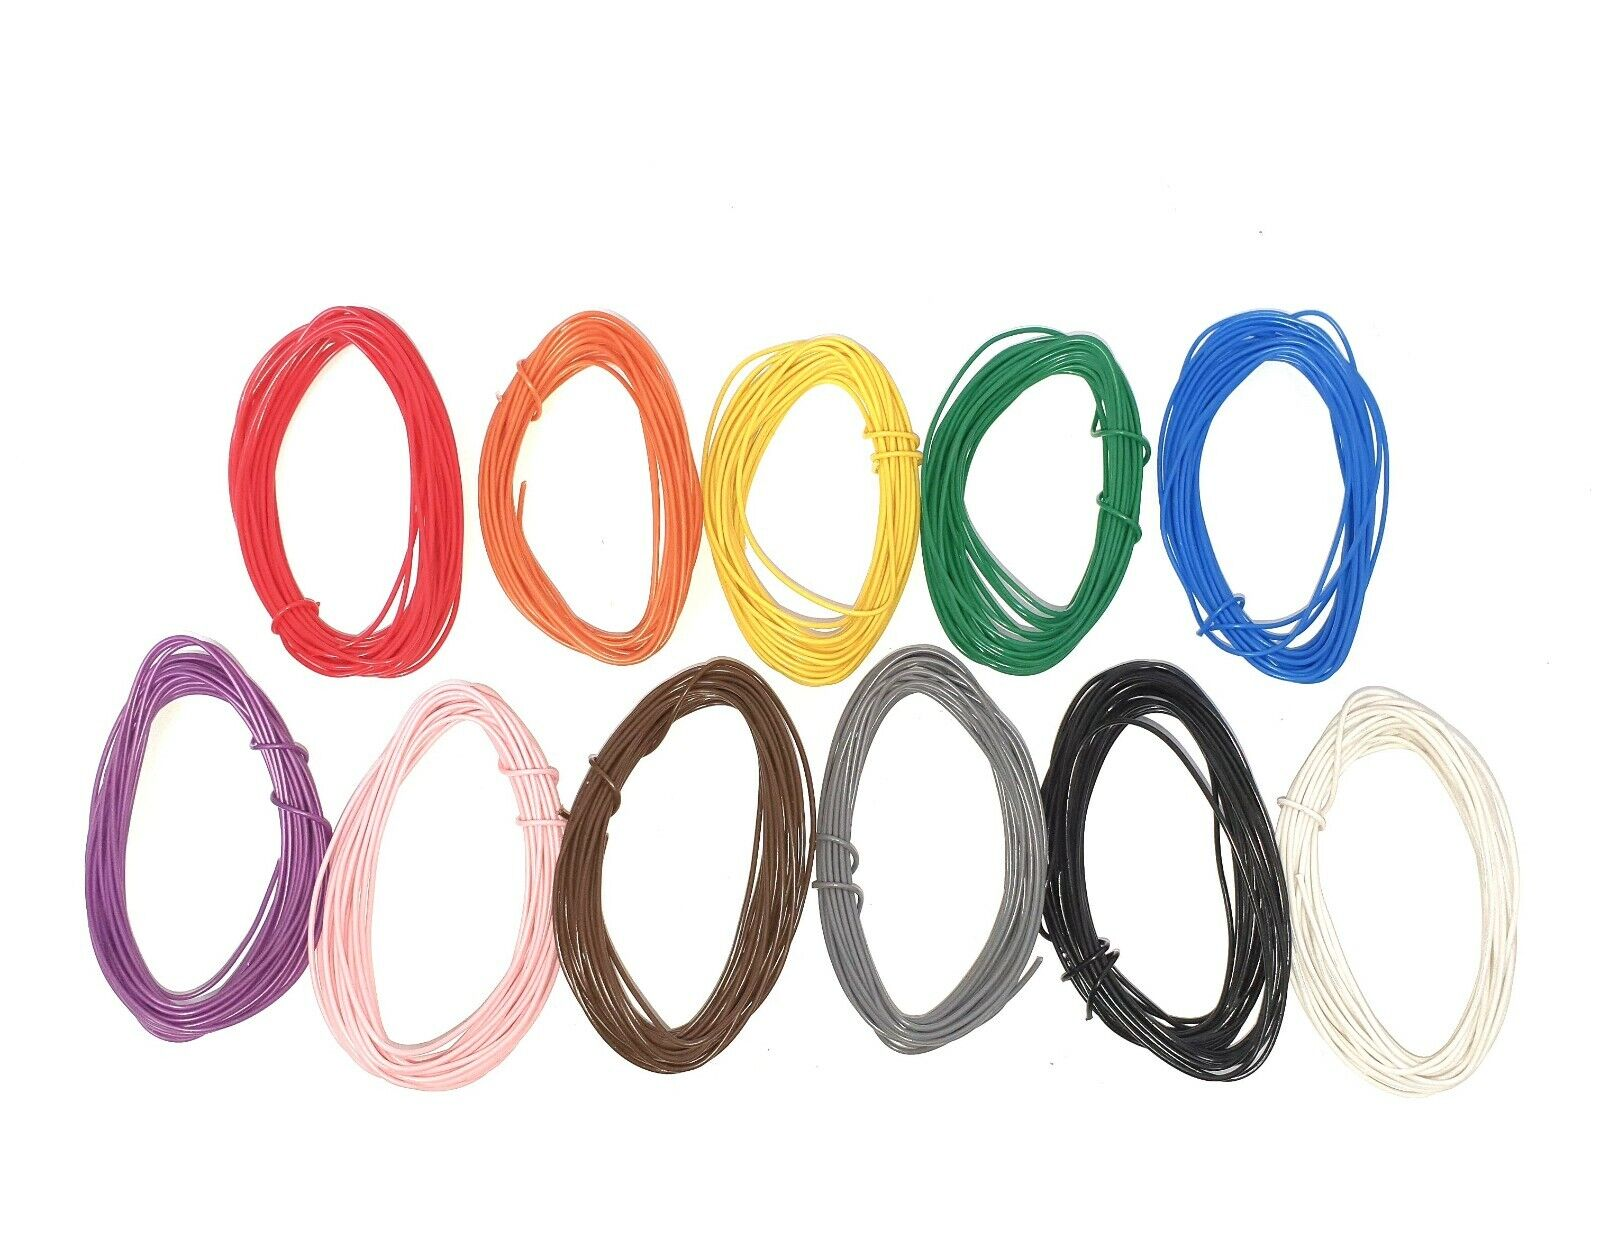 1/0.6mm Single Core Equipment /Hook up Wire 5m Rolls-22AWG -11 Colours